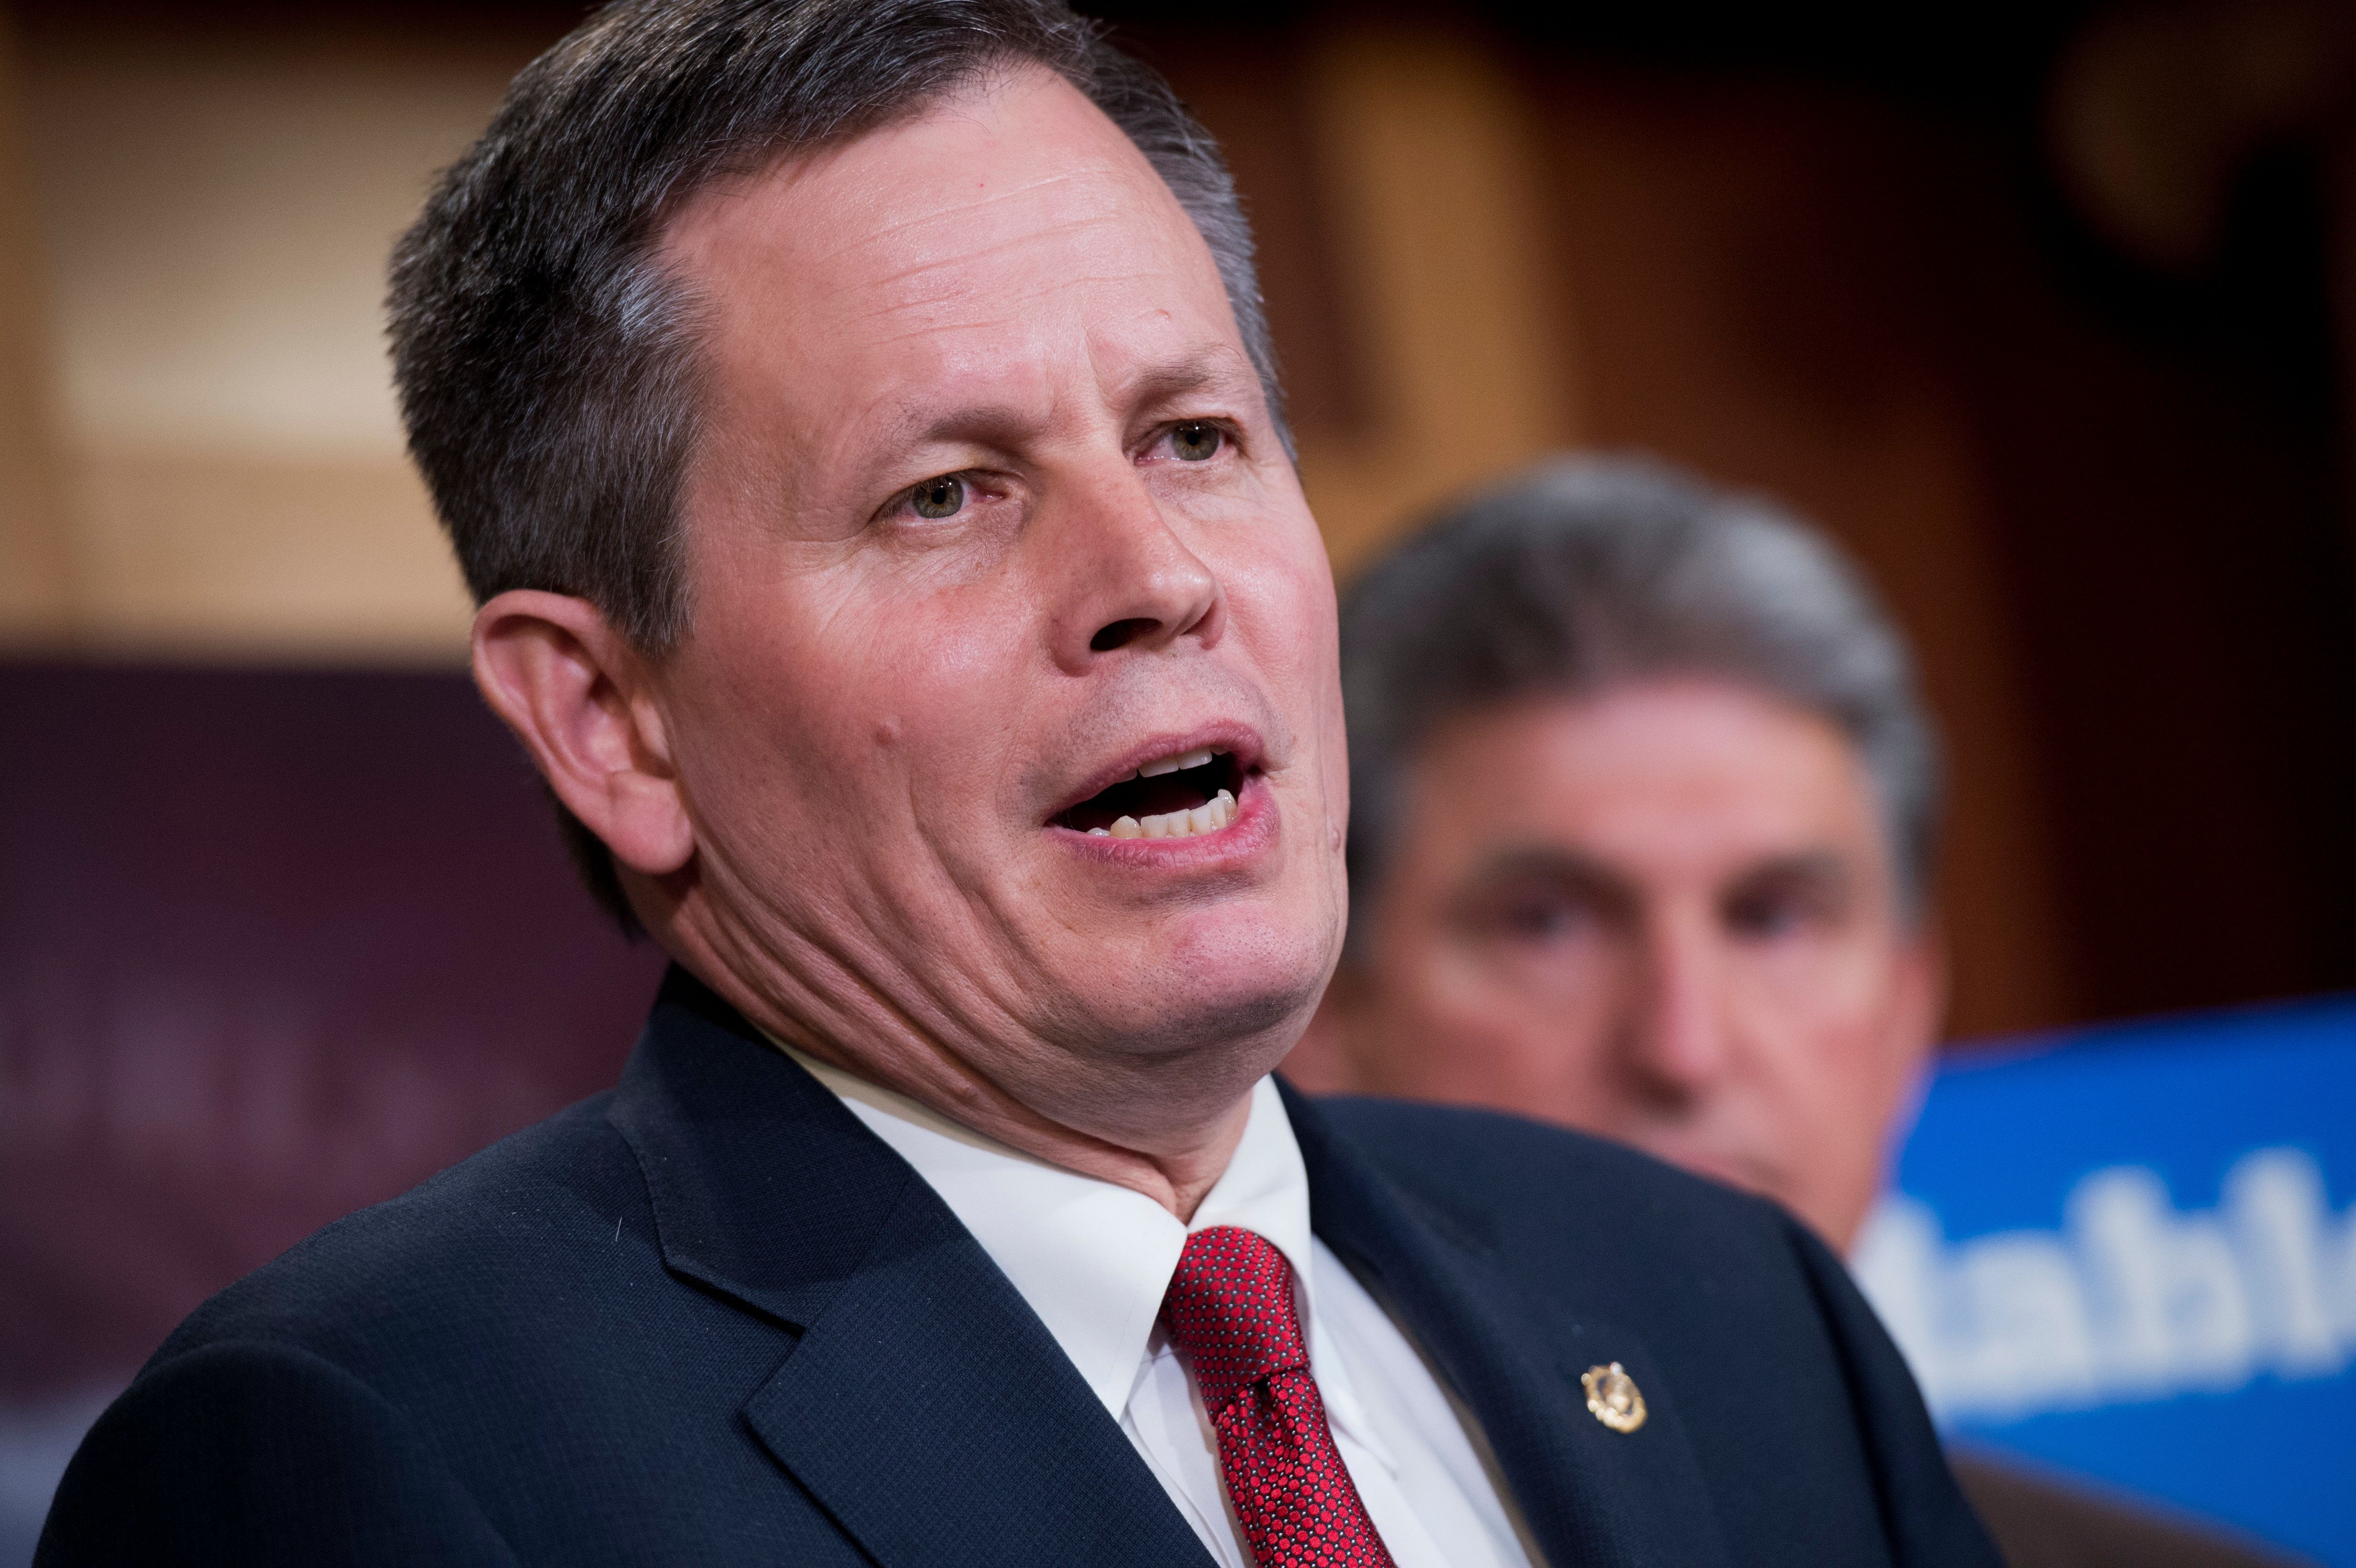 UNITED STATES - MAY 13: Sen. Steve Daines, R-Mont., speaks during a news conference in the Capitol's Senate studio to introduce greenhouse gas legislation that aims to 'rollback President Obama's Clean Power Plan,' May 13, 2015. Sen. Joe Manchin, D-W.Va., appears at right. (Photo By Tom Williams/CQ Roll Call)